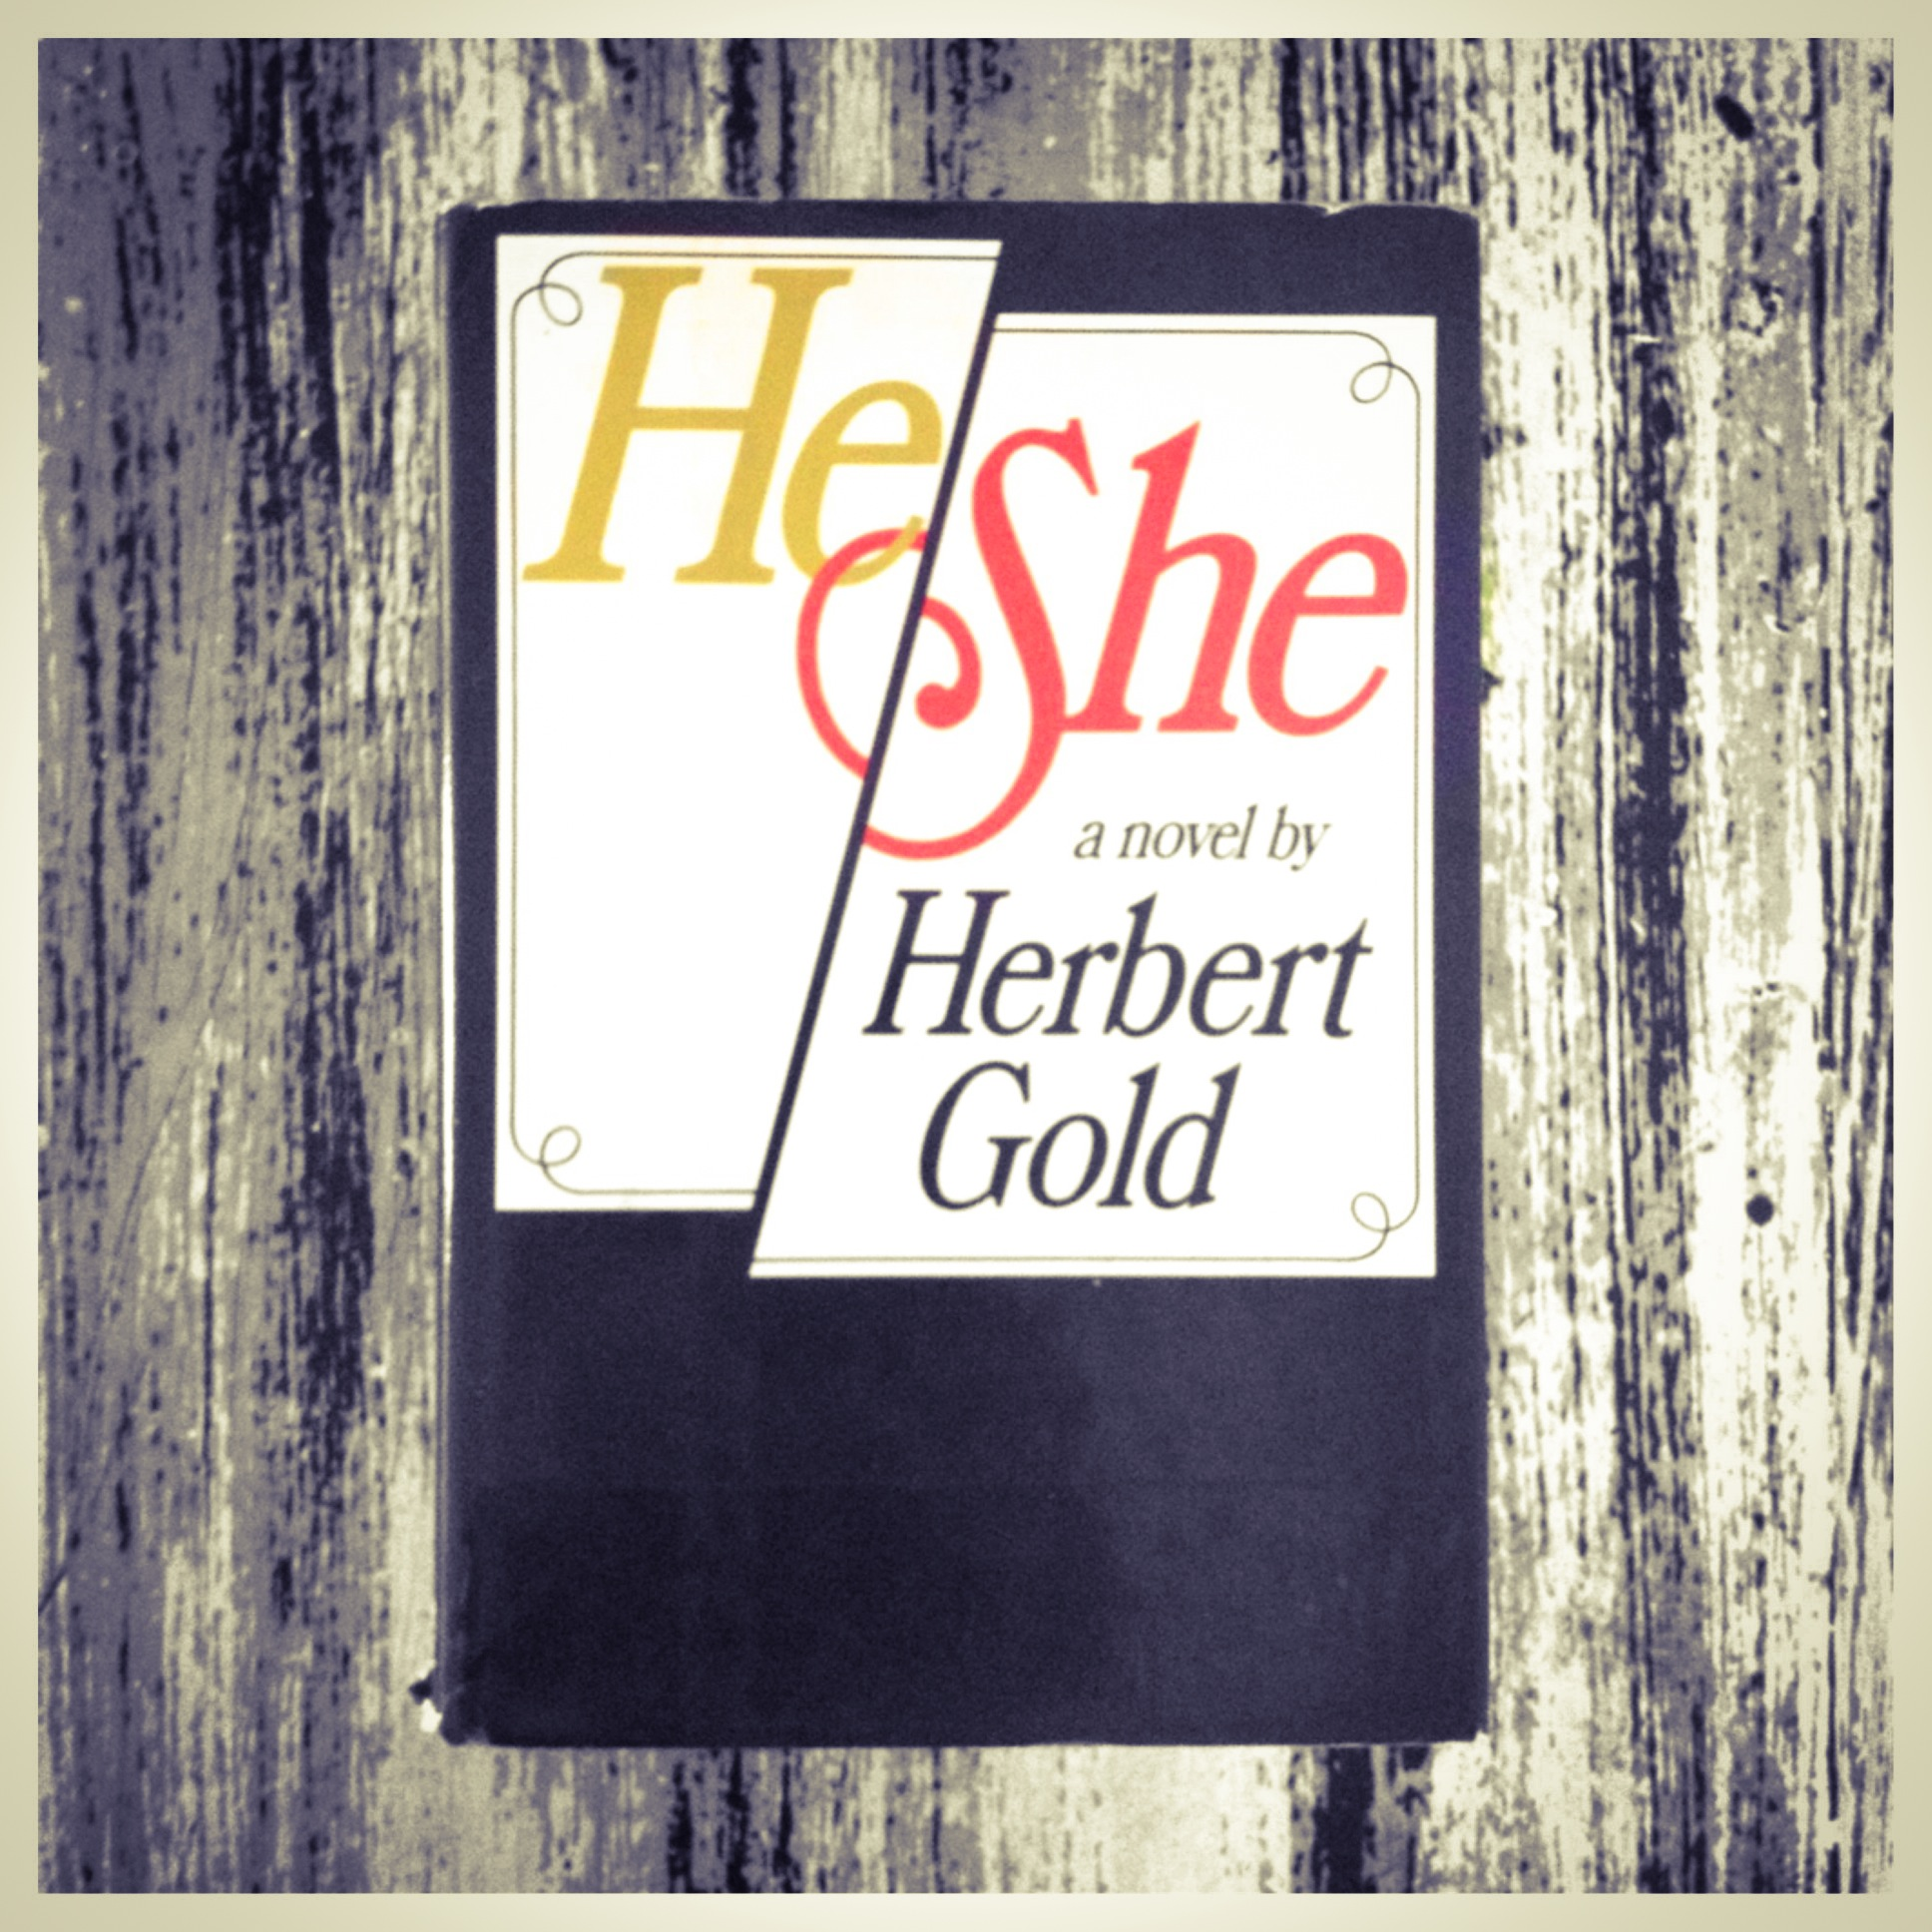 Herbert Gold - 1980 - HE SHE - Photo by Diana Phillips.JPG